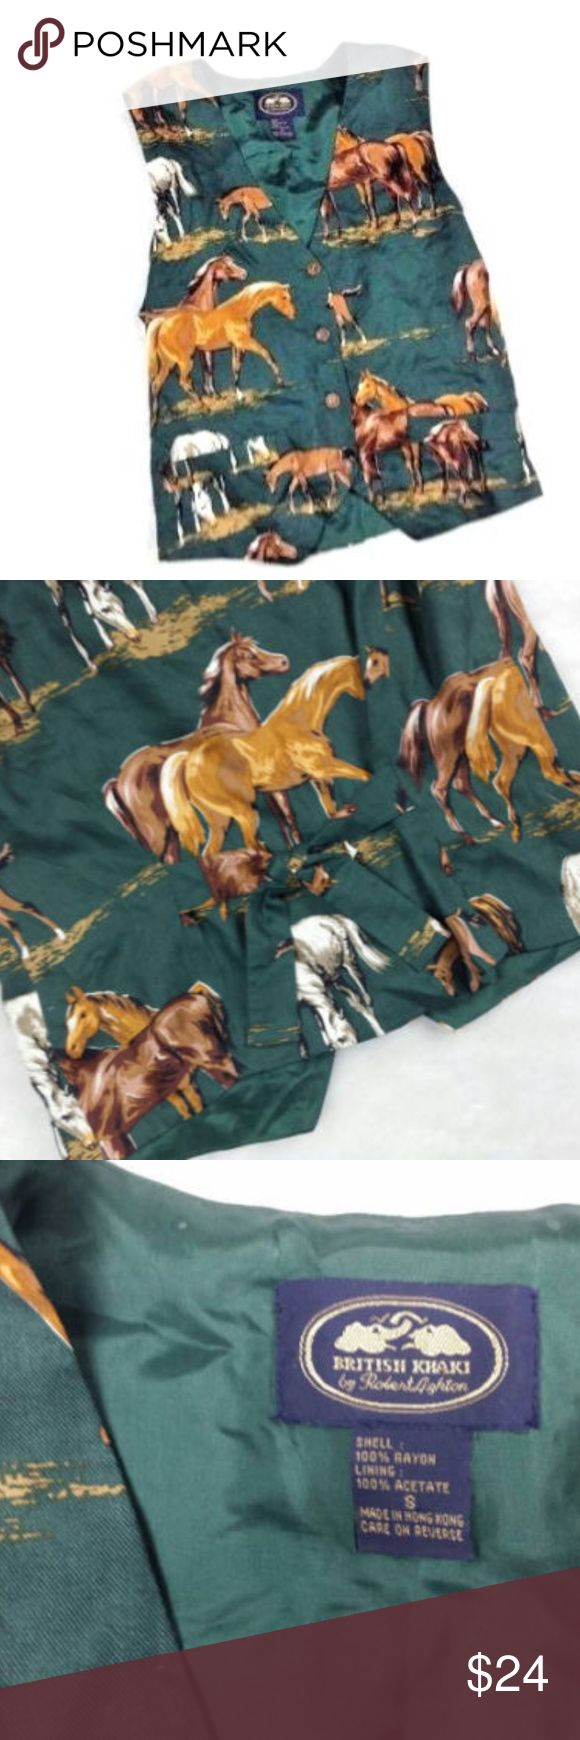 British Khaki By robert lighton Horse Print Vest S House Print Vest Western Stallions pony Green S British Khaki By robert lighton   British Khaki By robert lighton   House Print Vest Western Stallions pony's Hunter green background Unique tie back   Size Small S SM Women's  Very Cute and well made  Hunter Green background with brown houses  perfect for western theme party or a house lover!  Great for an aggie or 4H member  The back has a tie and there are buttons down the front  This is a…